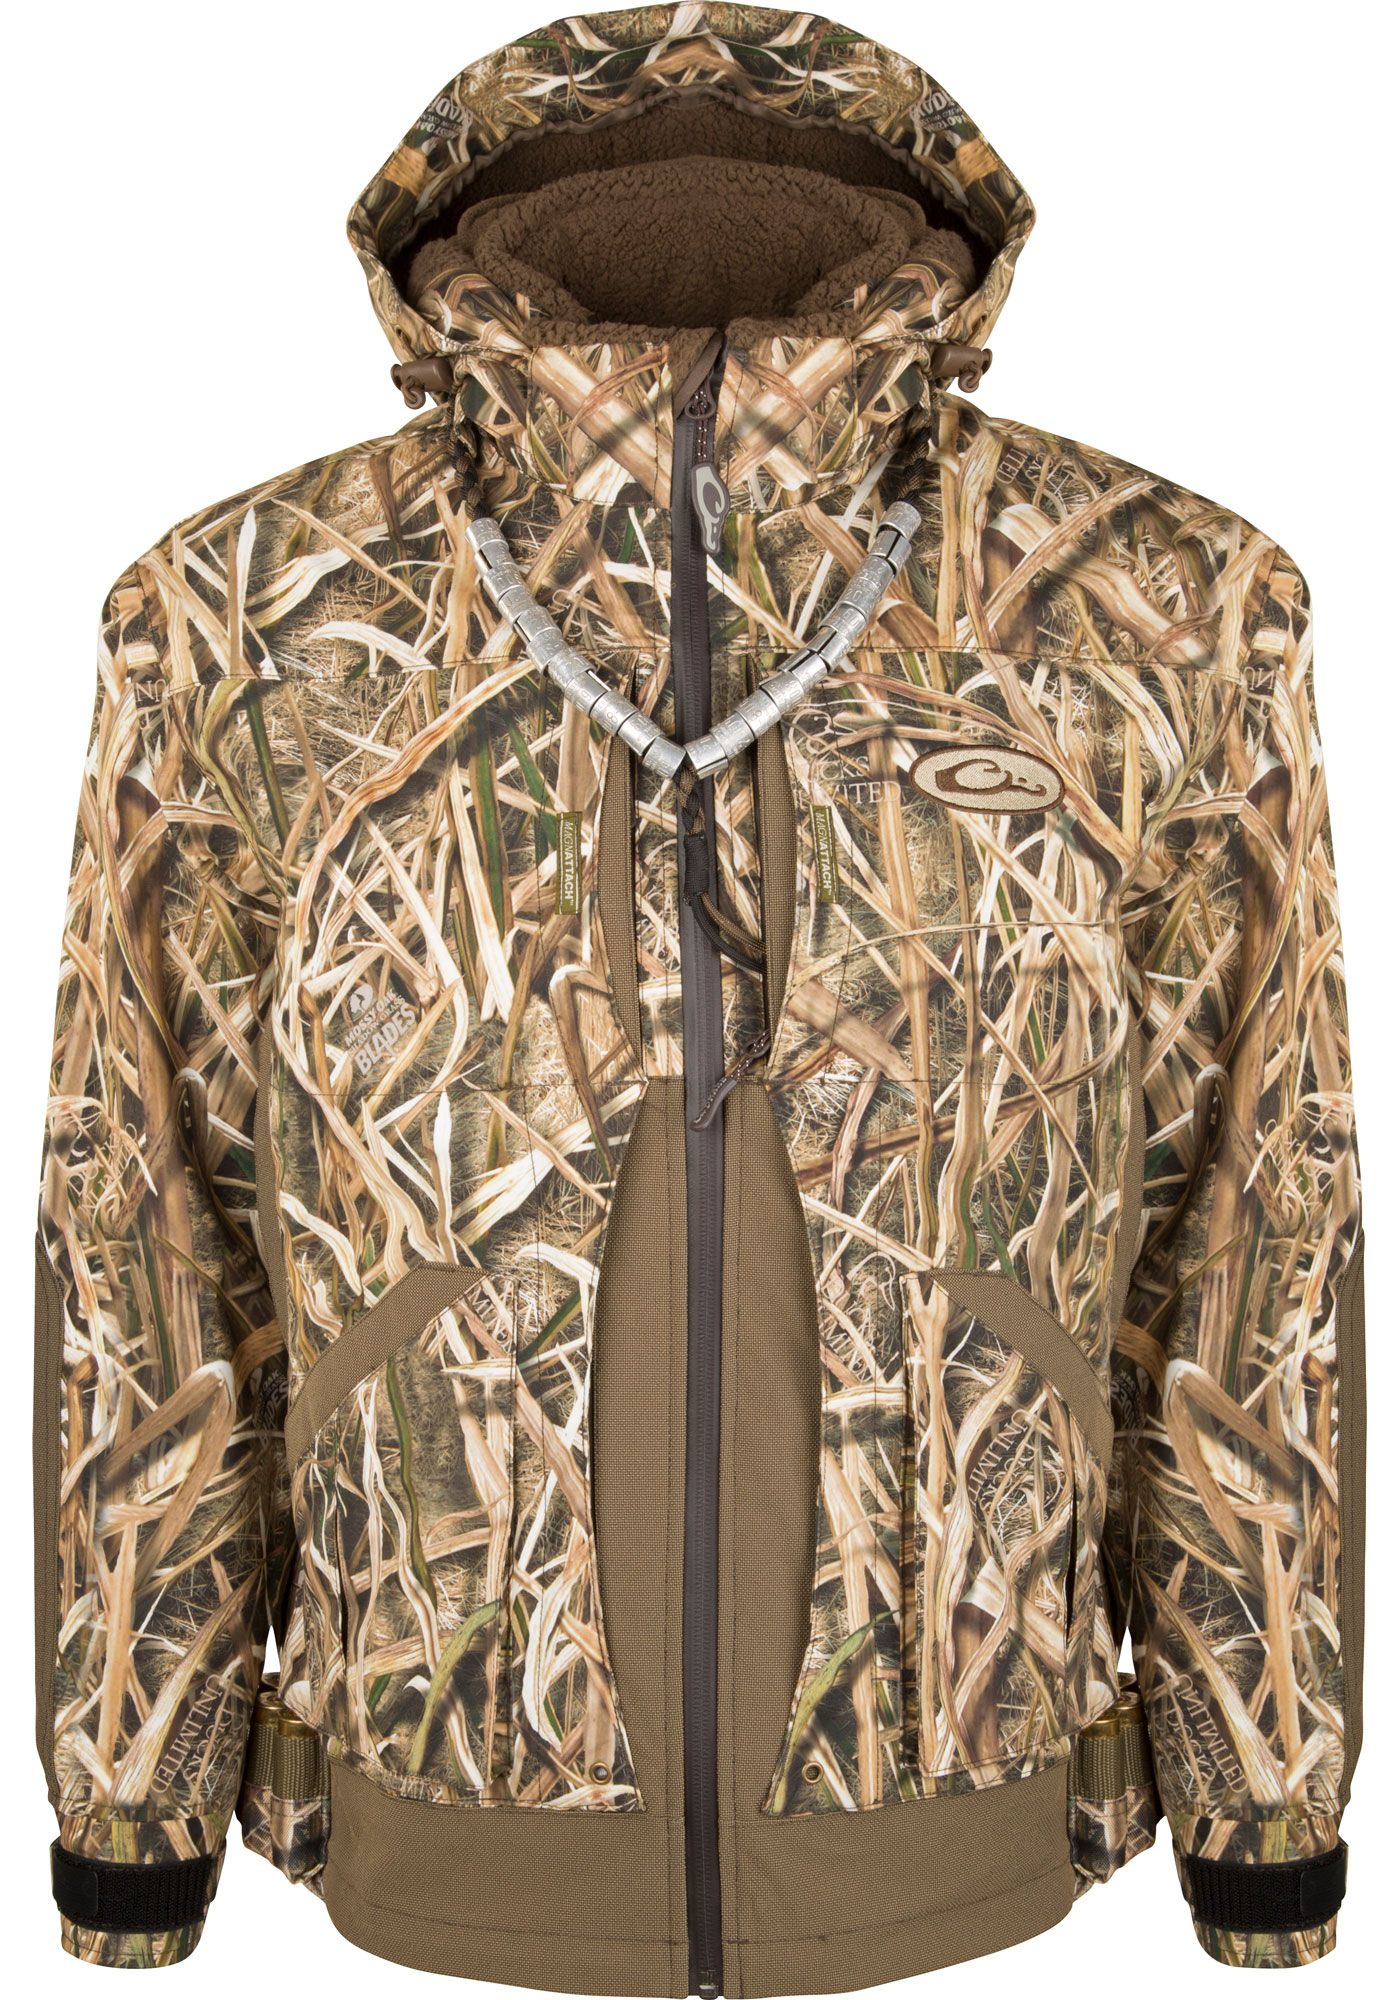 Drake Waterfowl Men's Guardian Elite Layout Blind Insulated Hunting Jacket